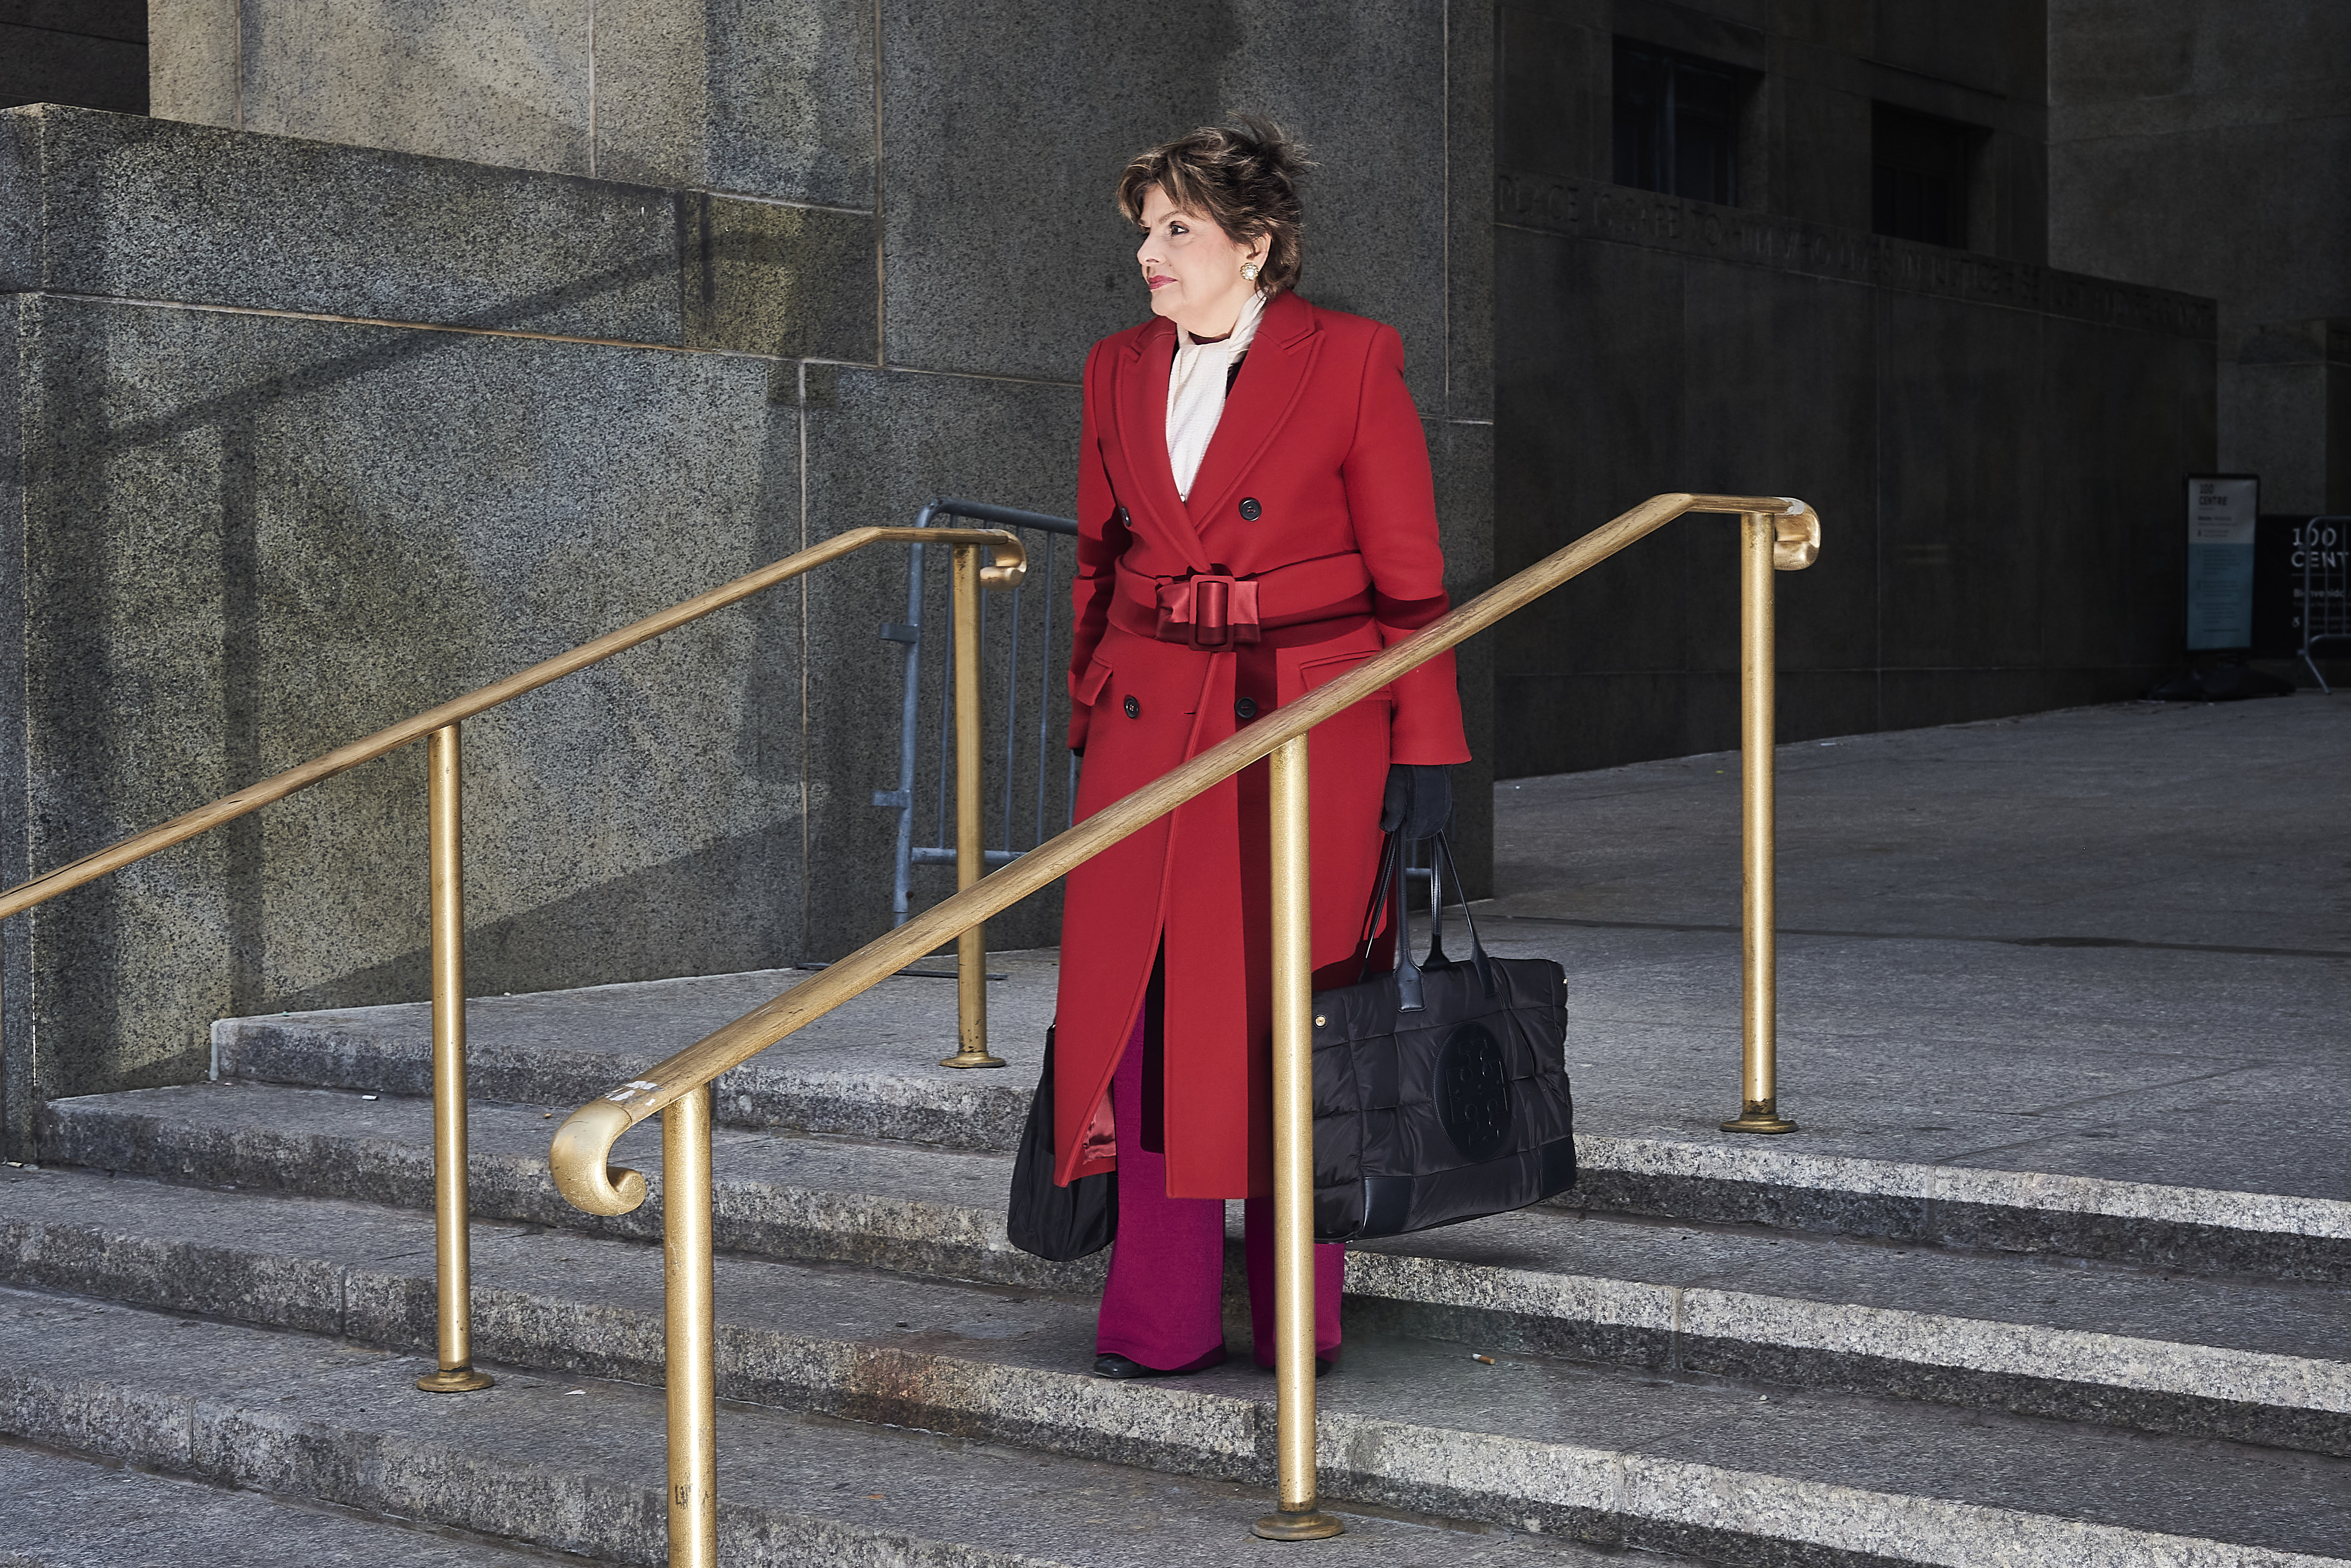 U.S. women's-rights attorney Gloria Allred, who represents actor Annabella Sciorra, outside New York City Criminal Court on Jan. 8.